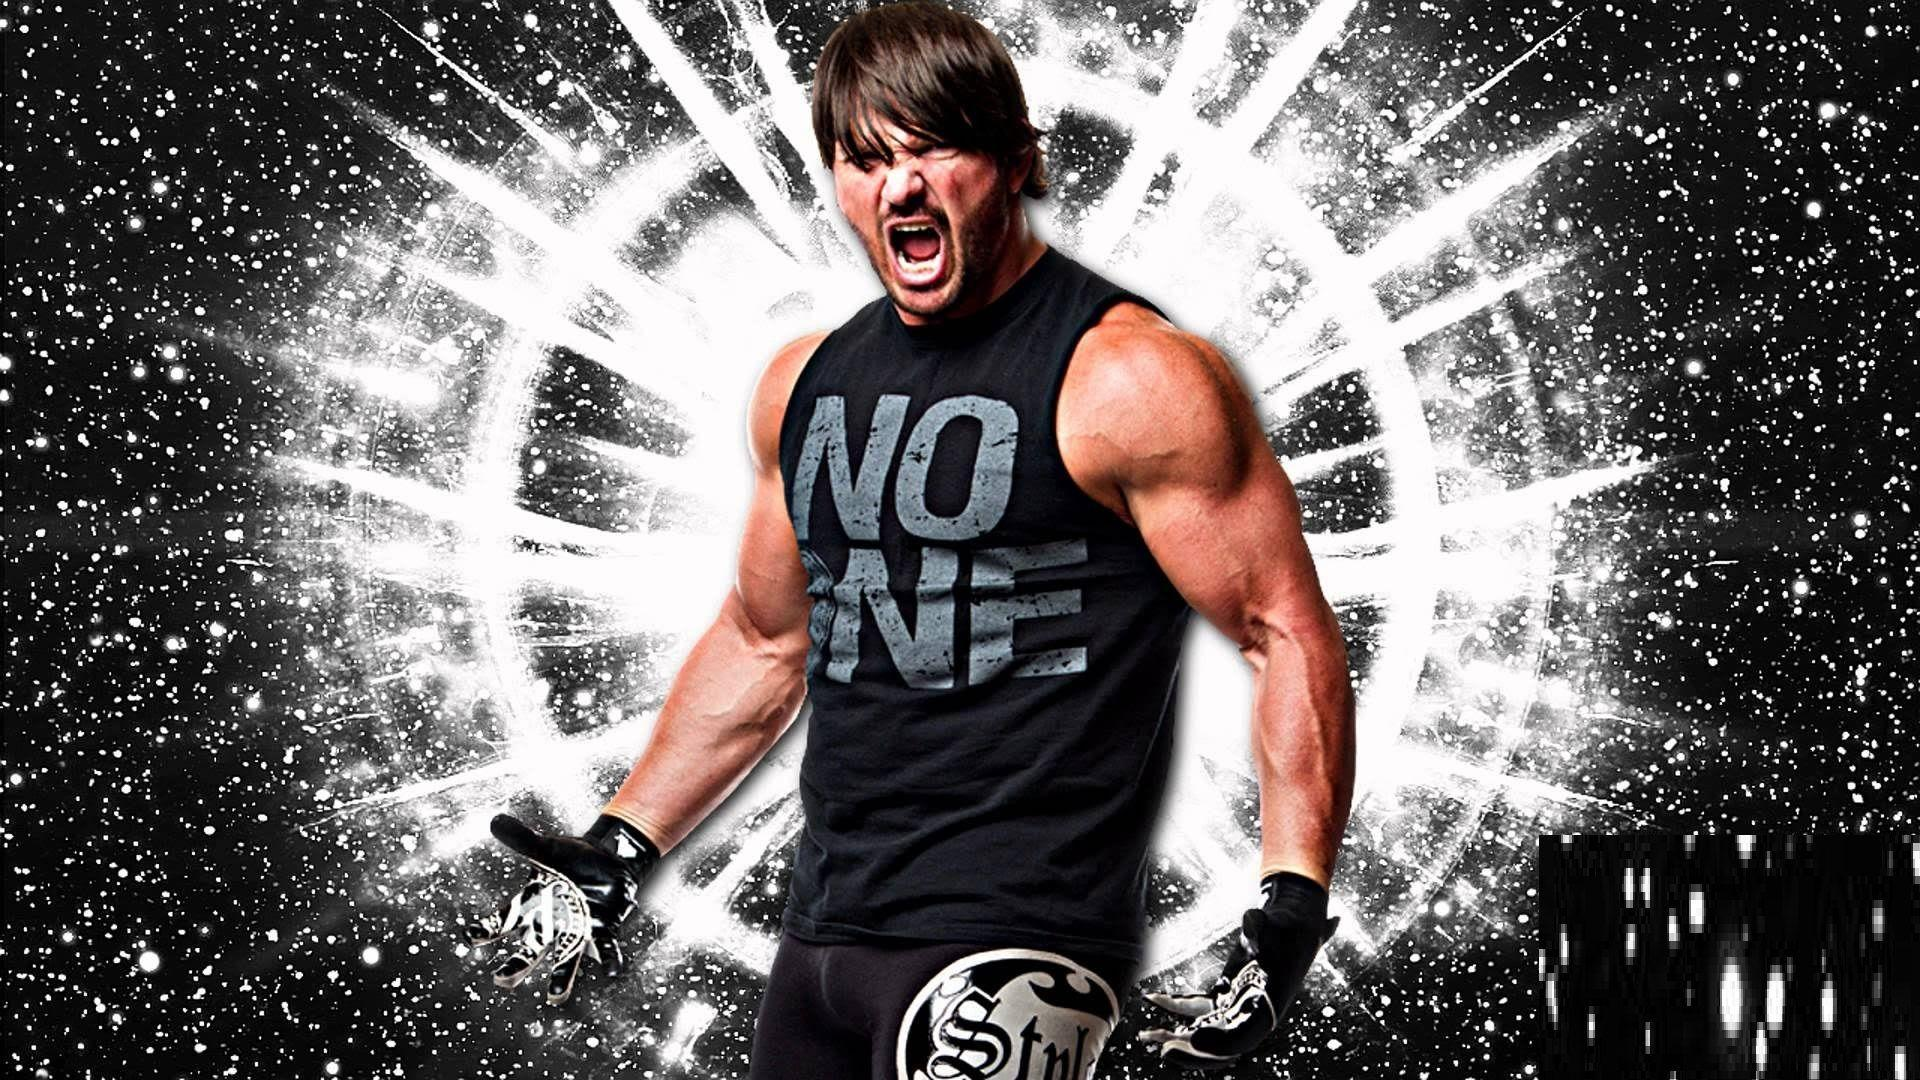 WWE Wrestler AJ Styles Wallpapers HD Pictures | One HD Wallpaper ...